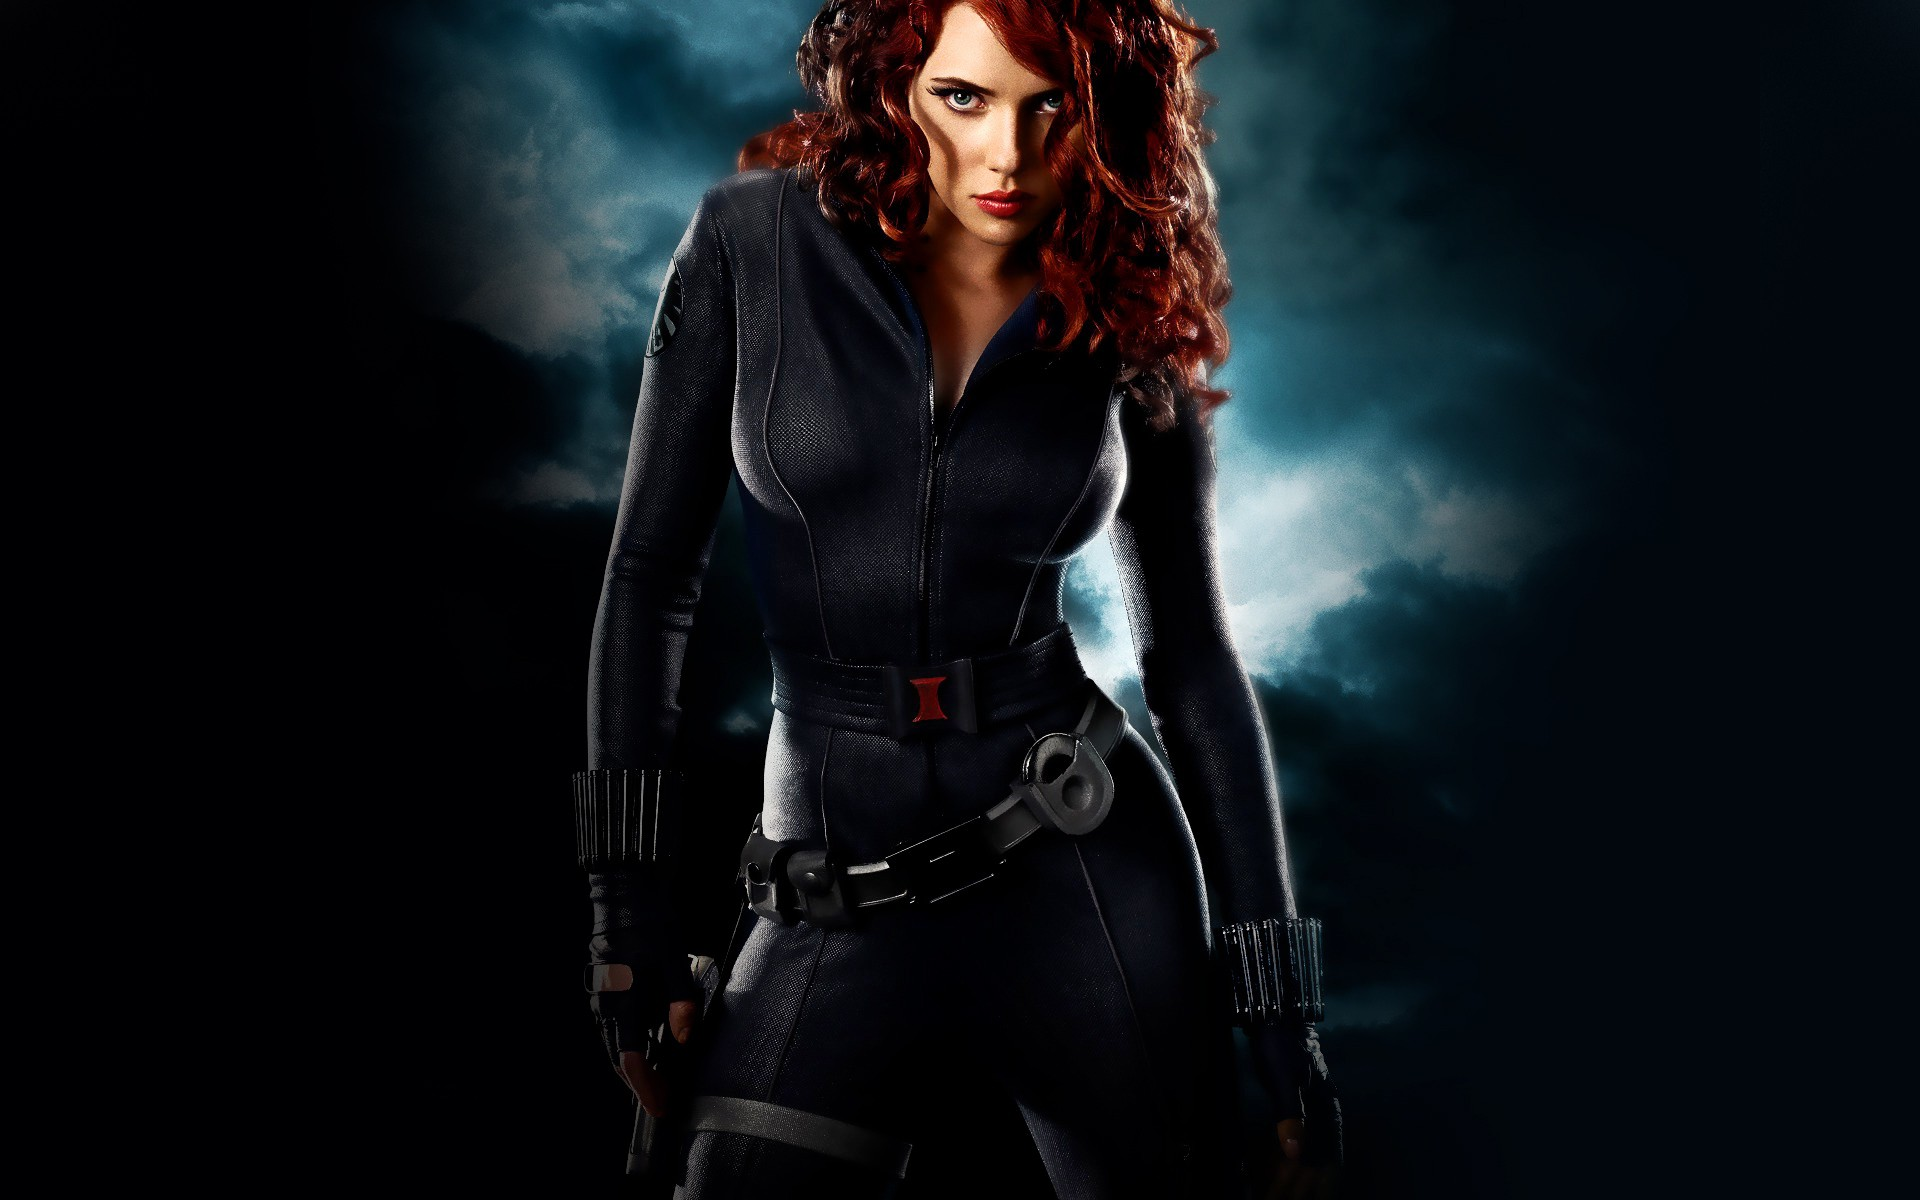 A few photos from the set of Captain America: Civil War have surfaced, showing two characters: the first one is the one and only Scarlet Johansson playing ...